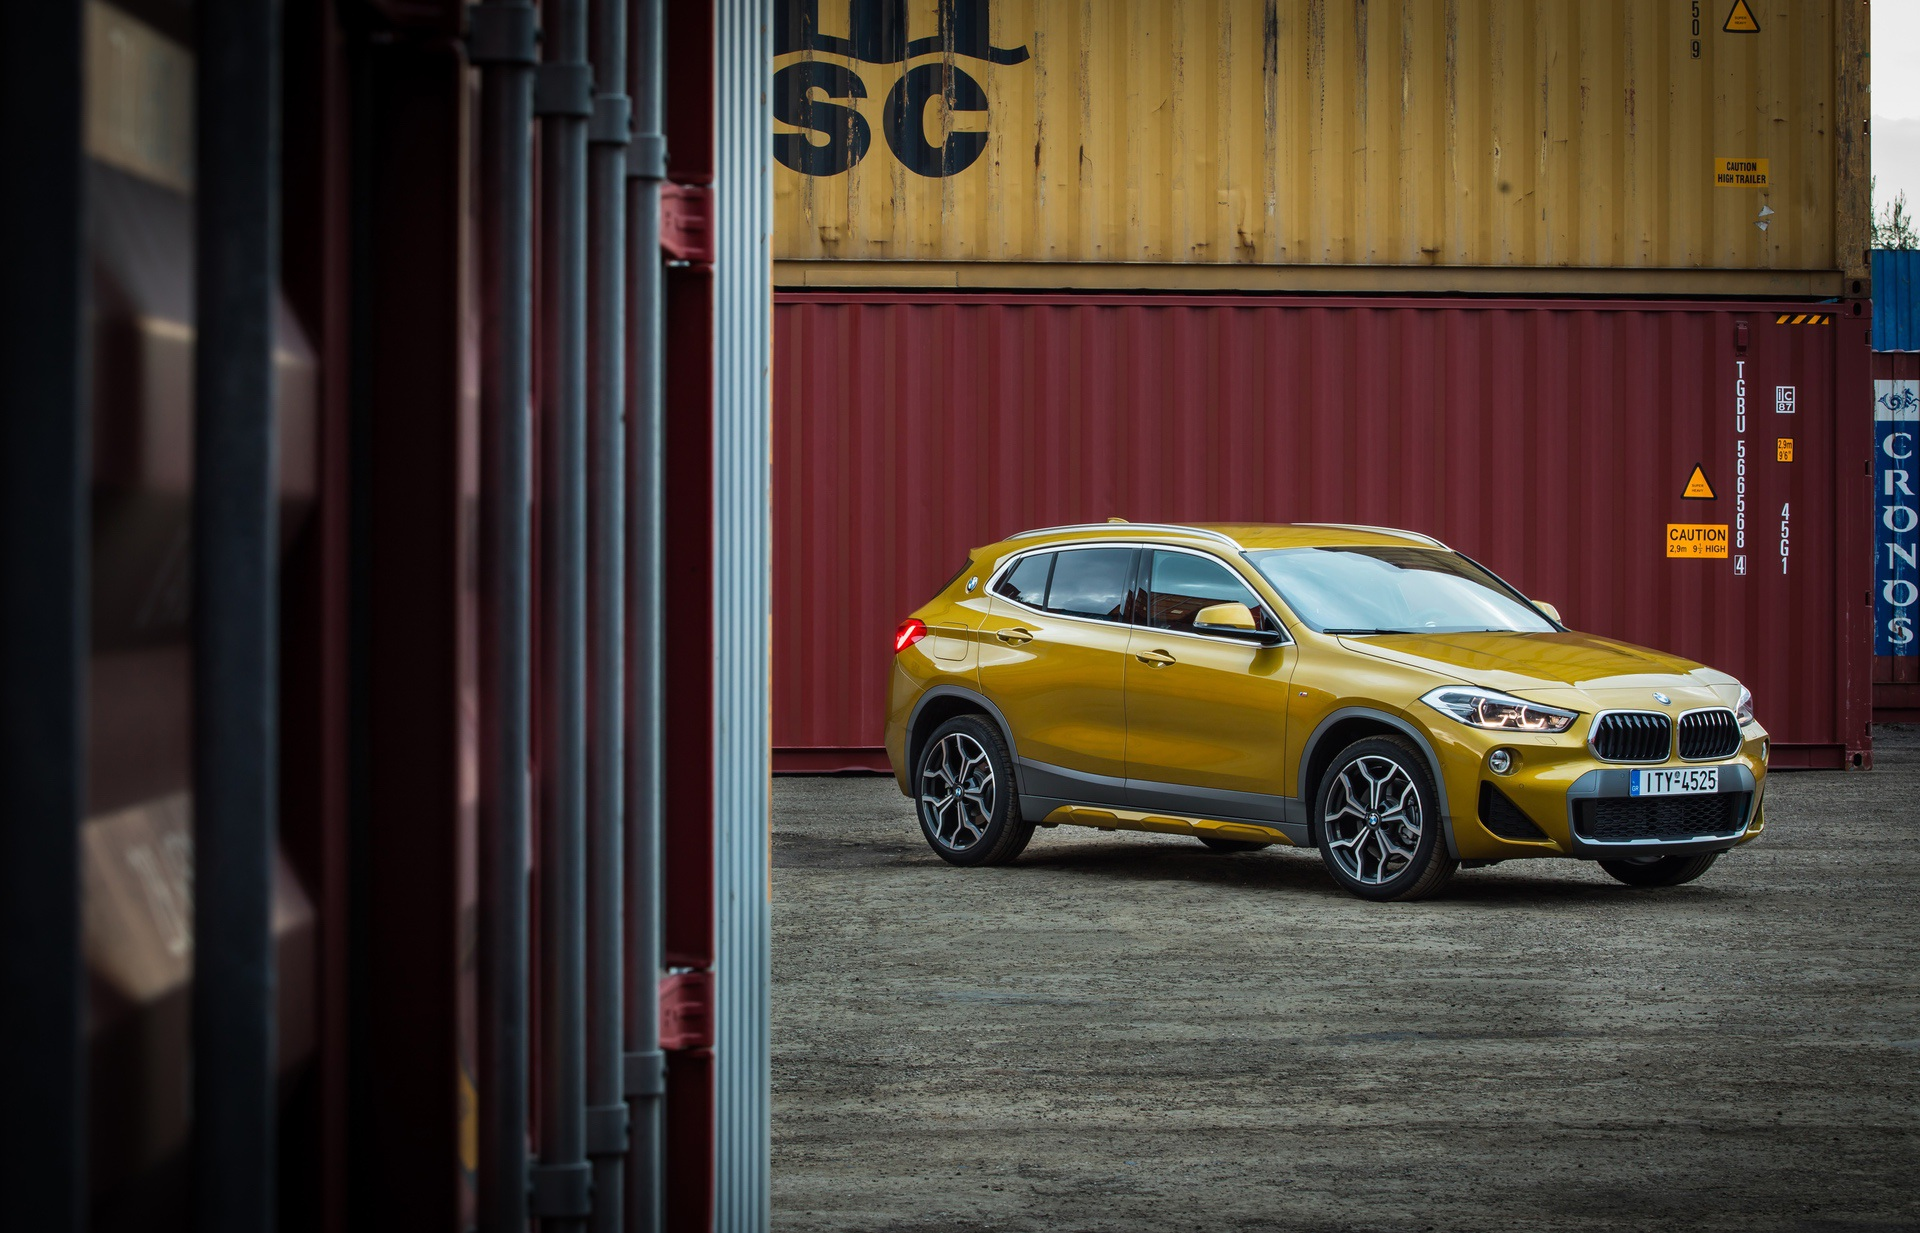 BMW_X2_Greek_presskit_0075